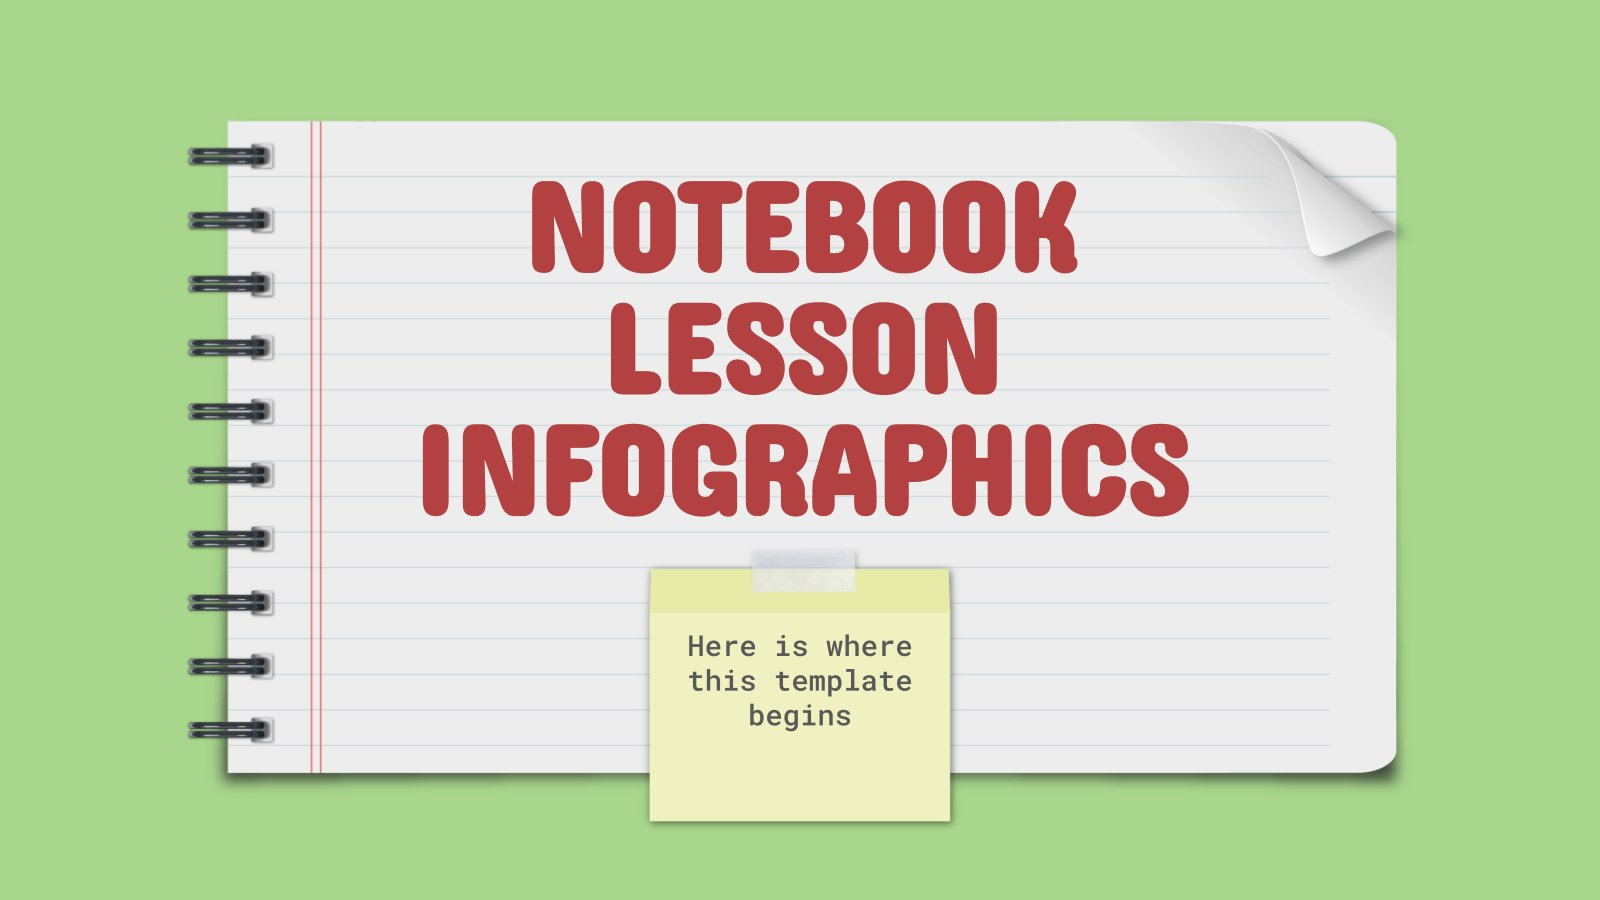 Notebook Lesson Infographics presentation template